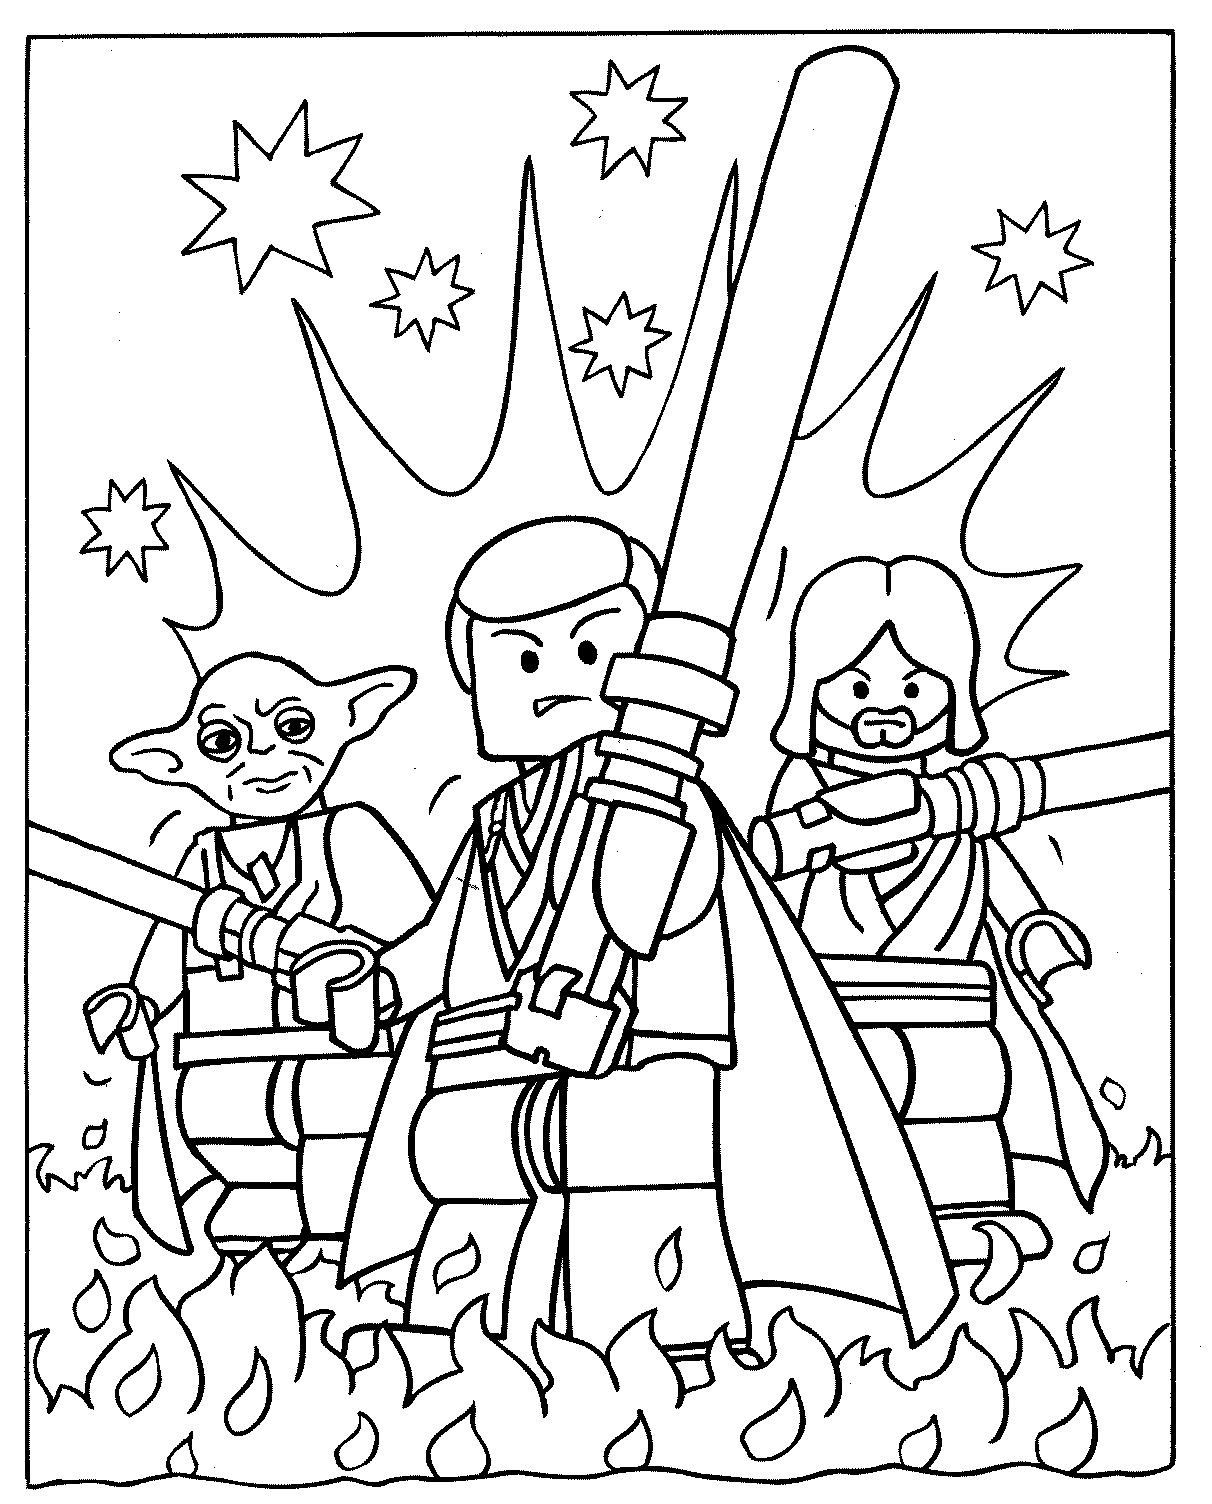 Free Colouring Pages For Kids Star Wars Jpg 1212 1504 Lego Coloring Pages Lego Coloring Star Wars Colors